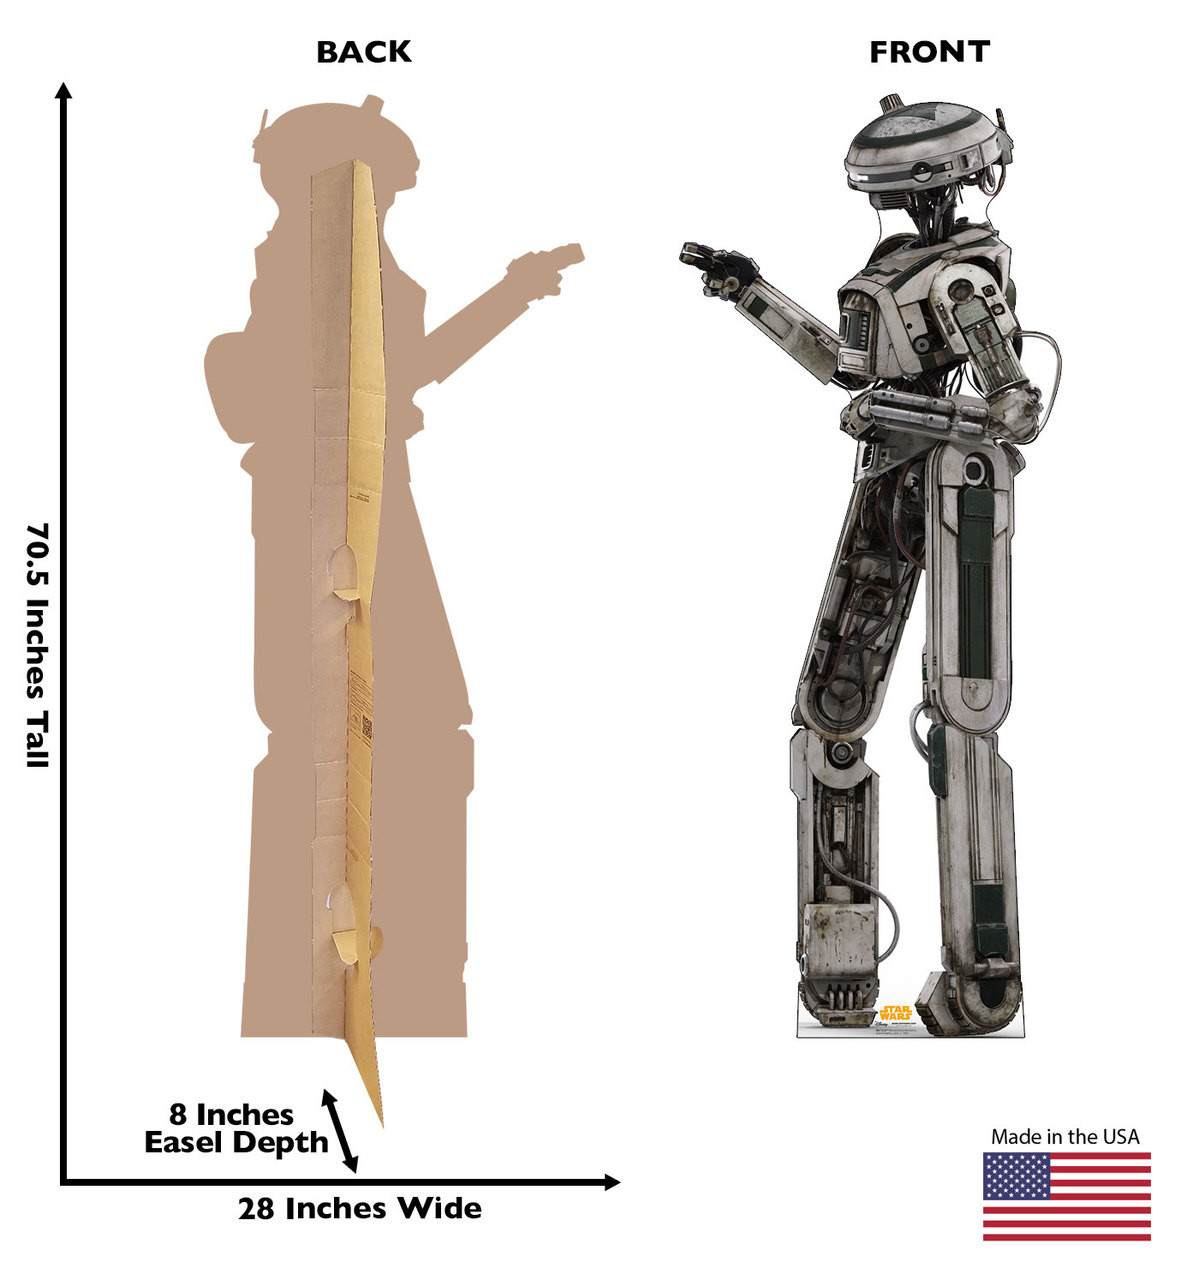 L3-37™ Life-size cardboard standee back and front with dimensions.